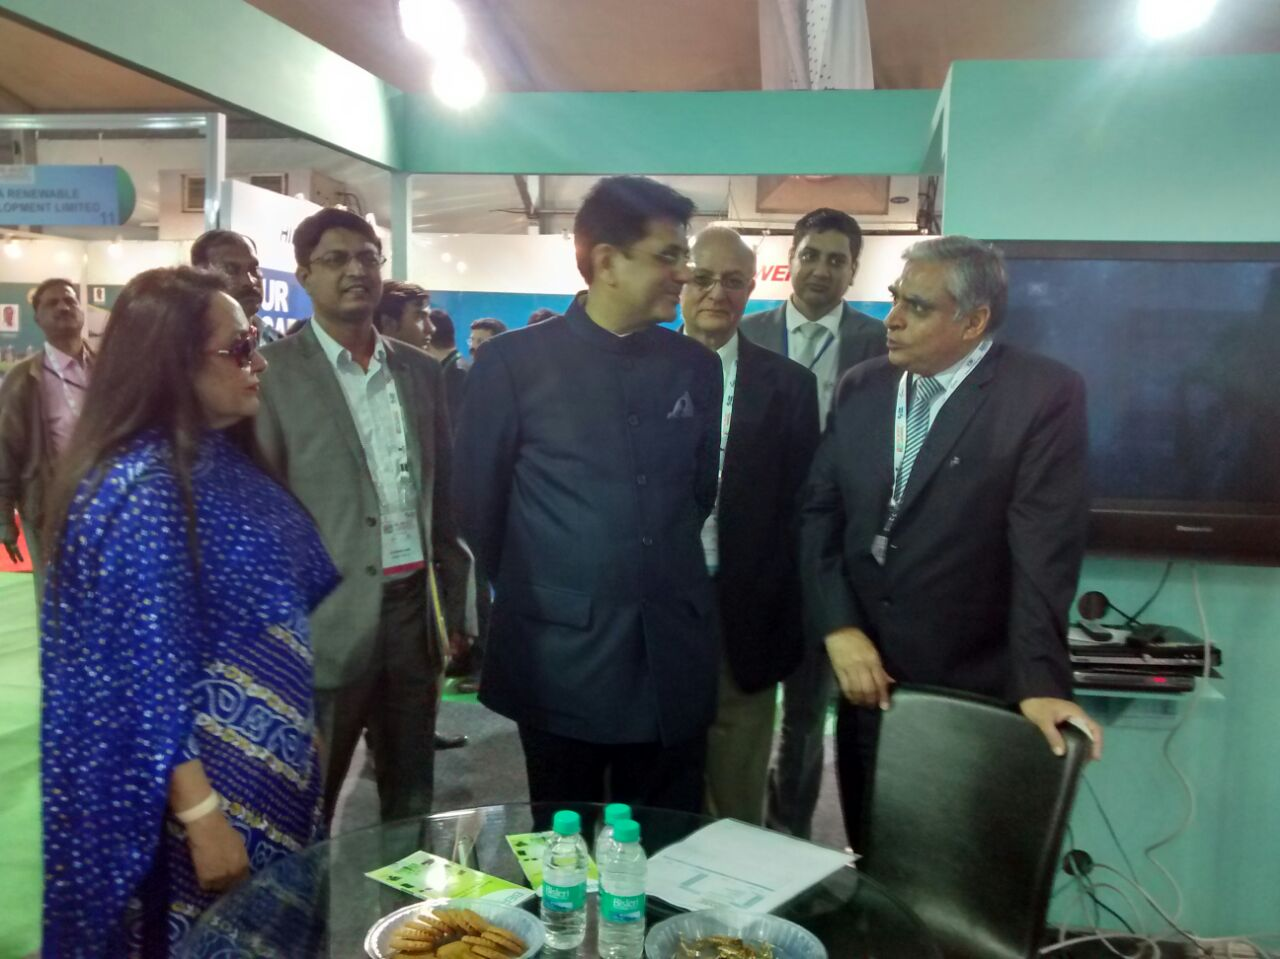 Mr Piyush Goyal & Mr Rajinder Kumar Kaura